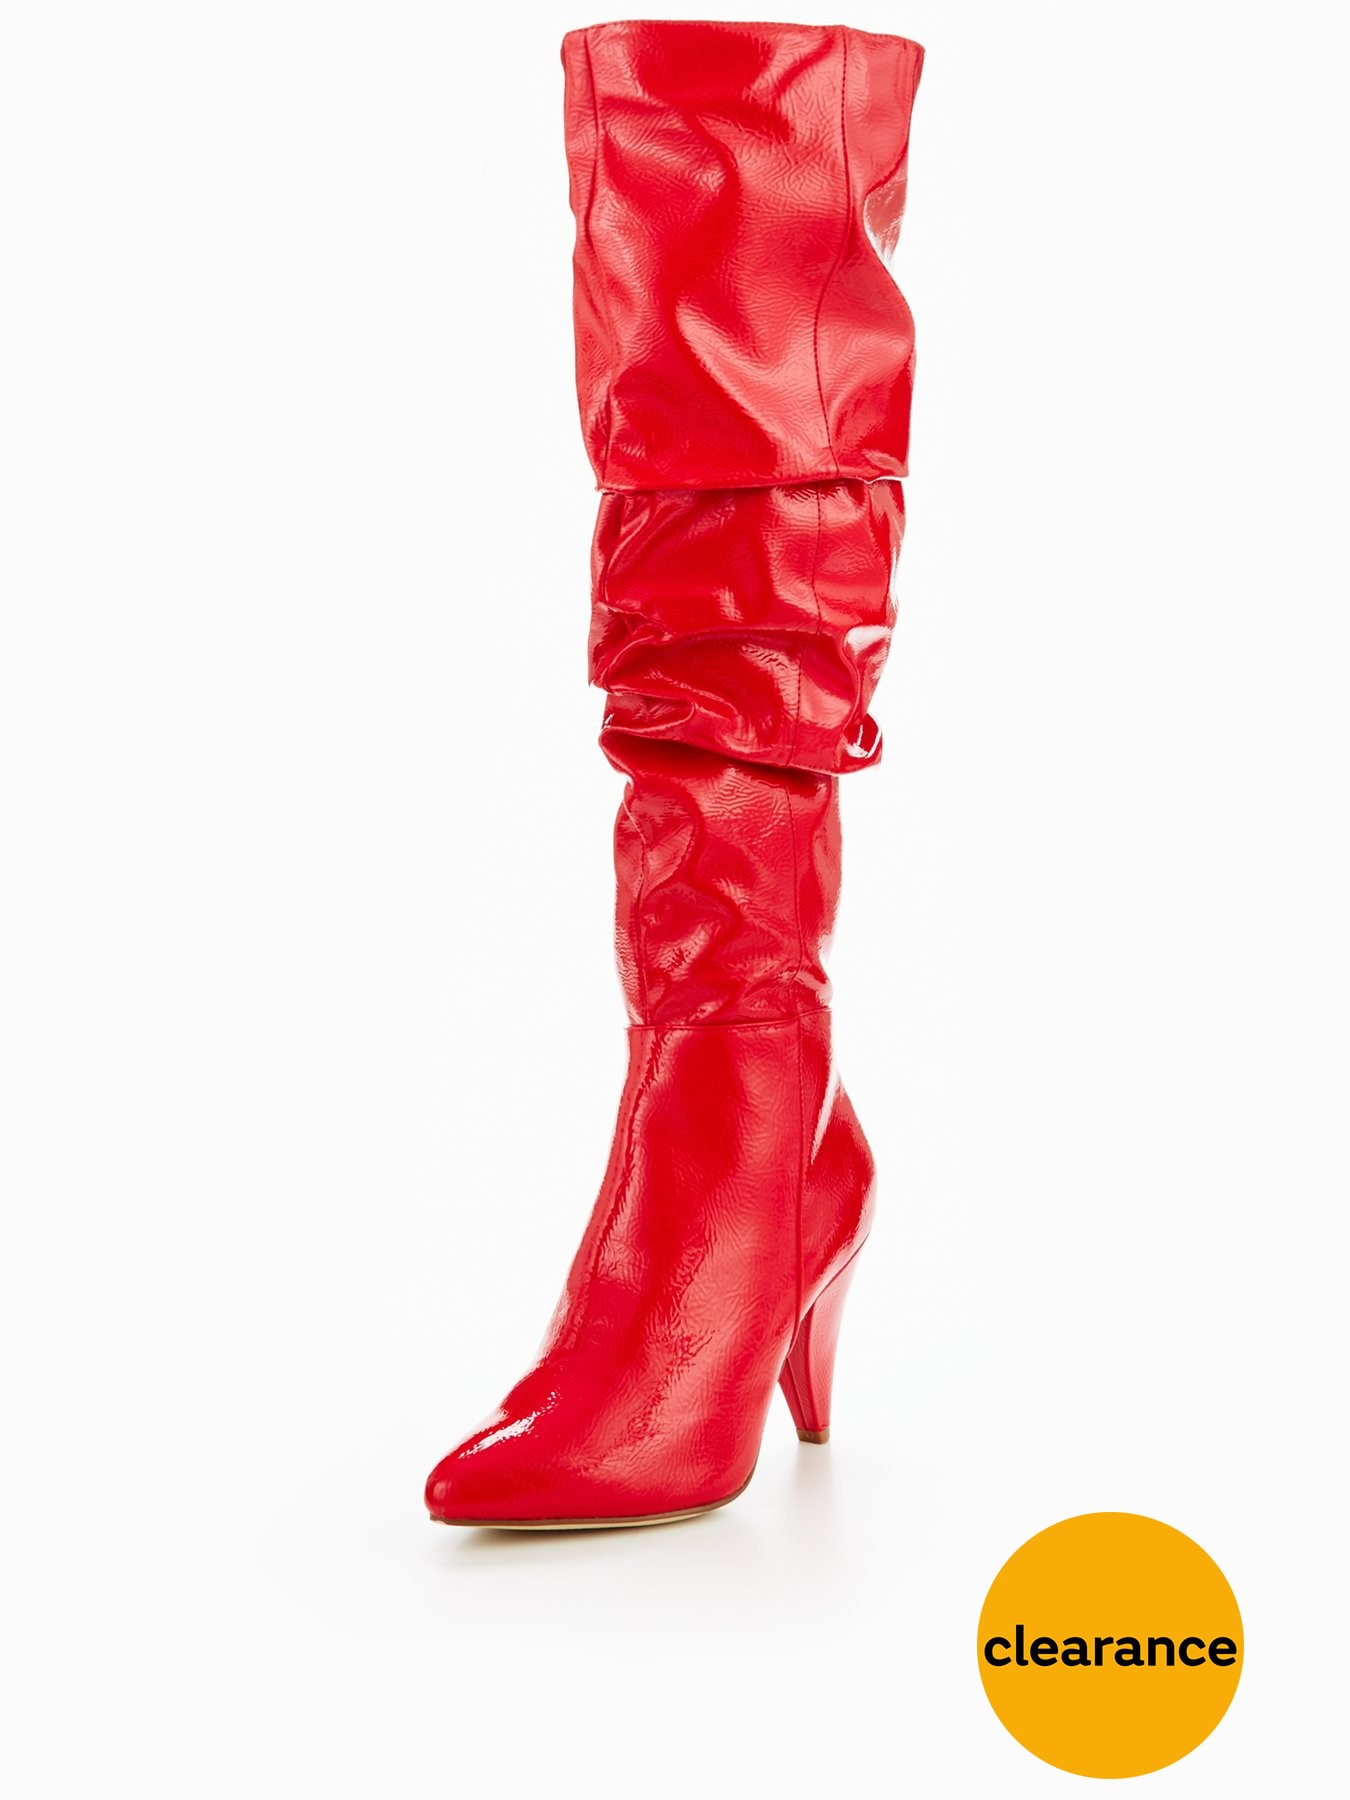 Miss Selfridge Red Patent Ruched Over The Knee Boot 1600193416 Women's Shoes Miss Selfridge Boots